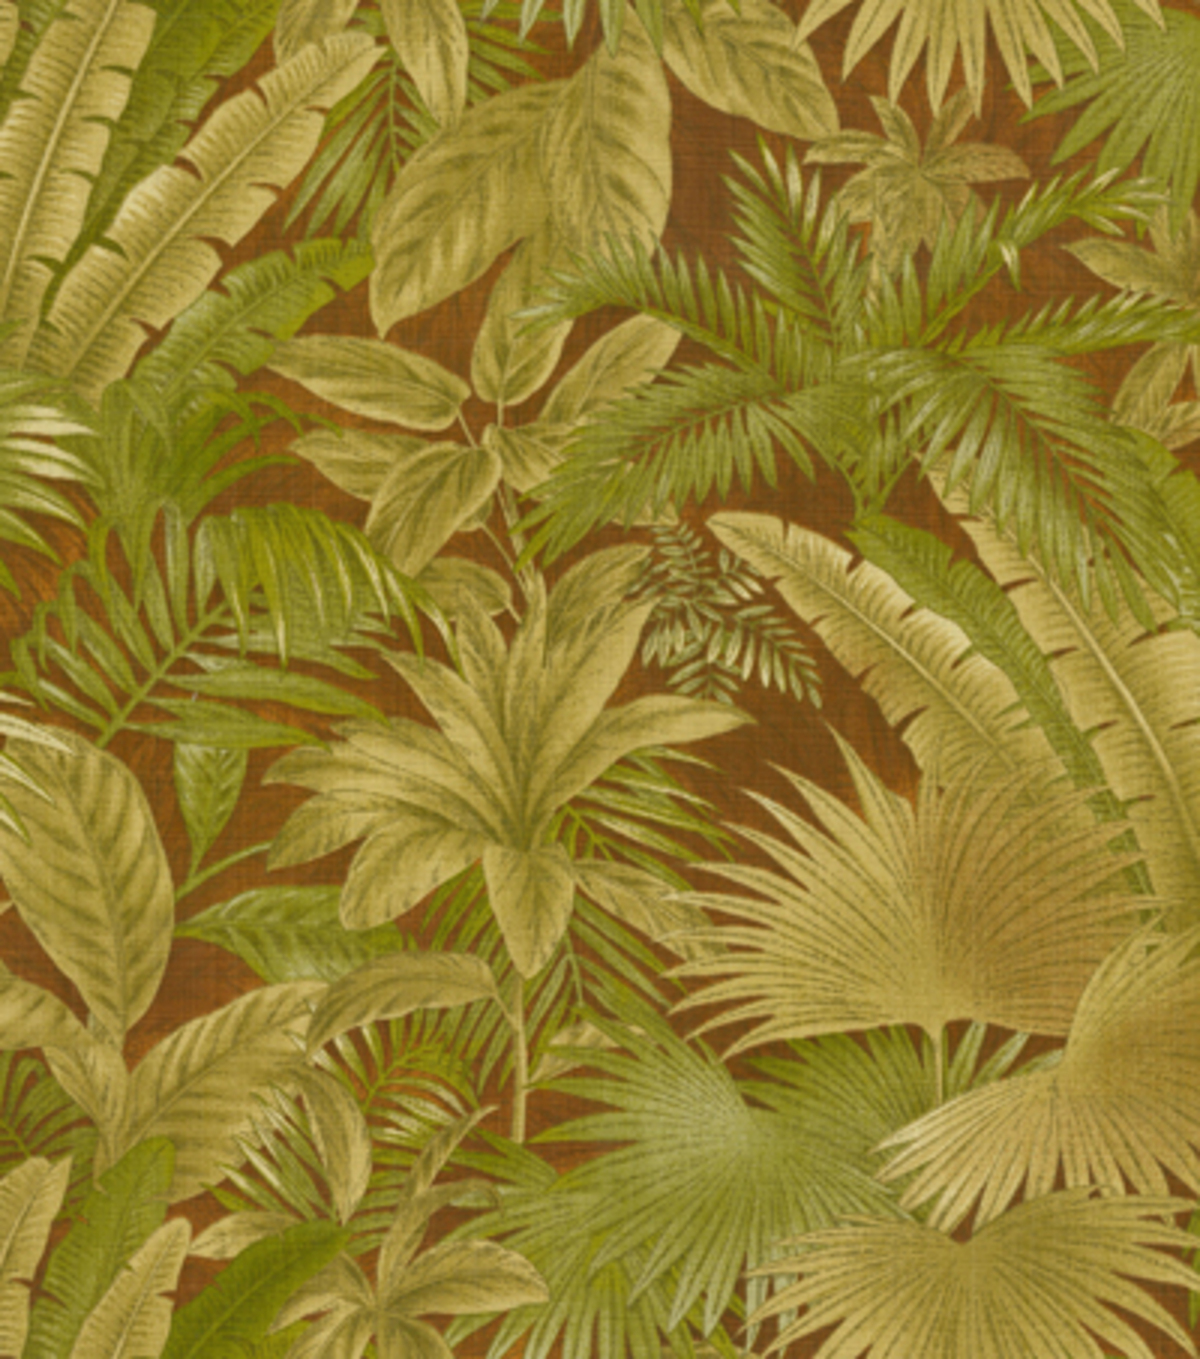 Home Decor 8\u0022x8\u0022 Fabric Swatch-Tommy Bahama Bahamian Breeze/Cinnamon